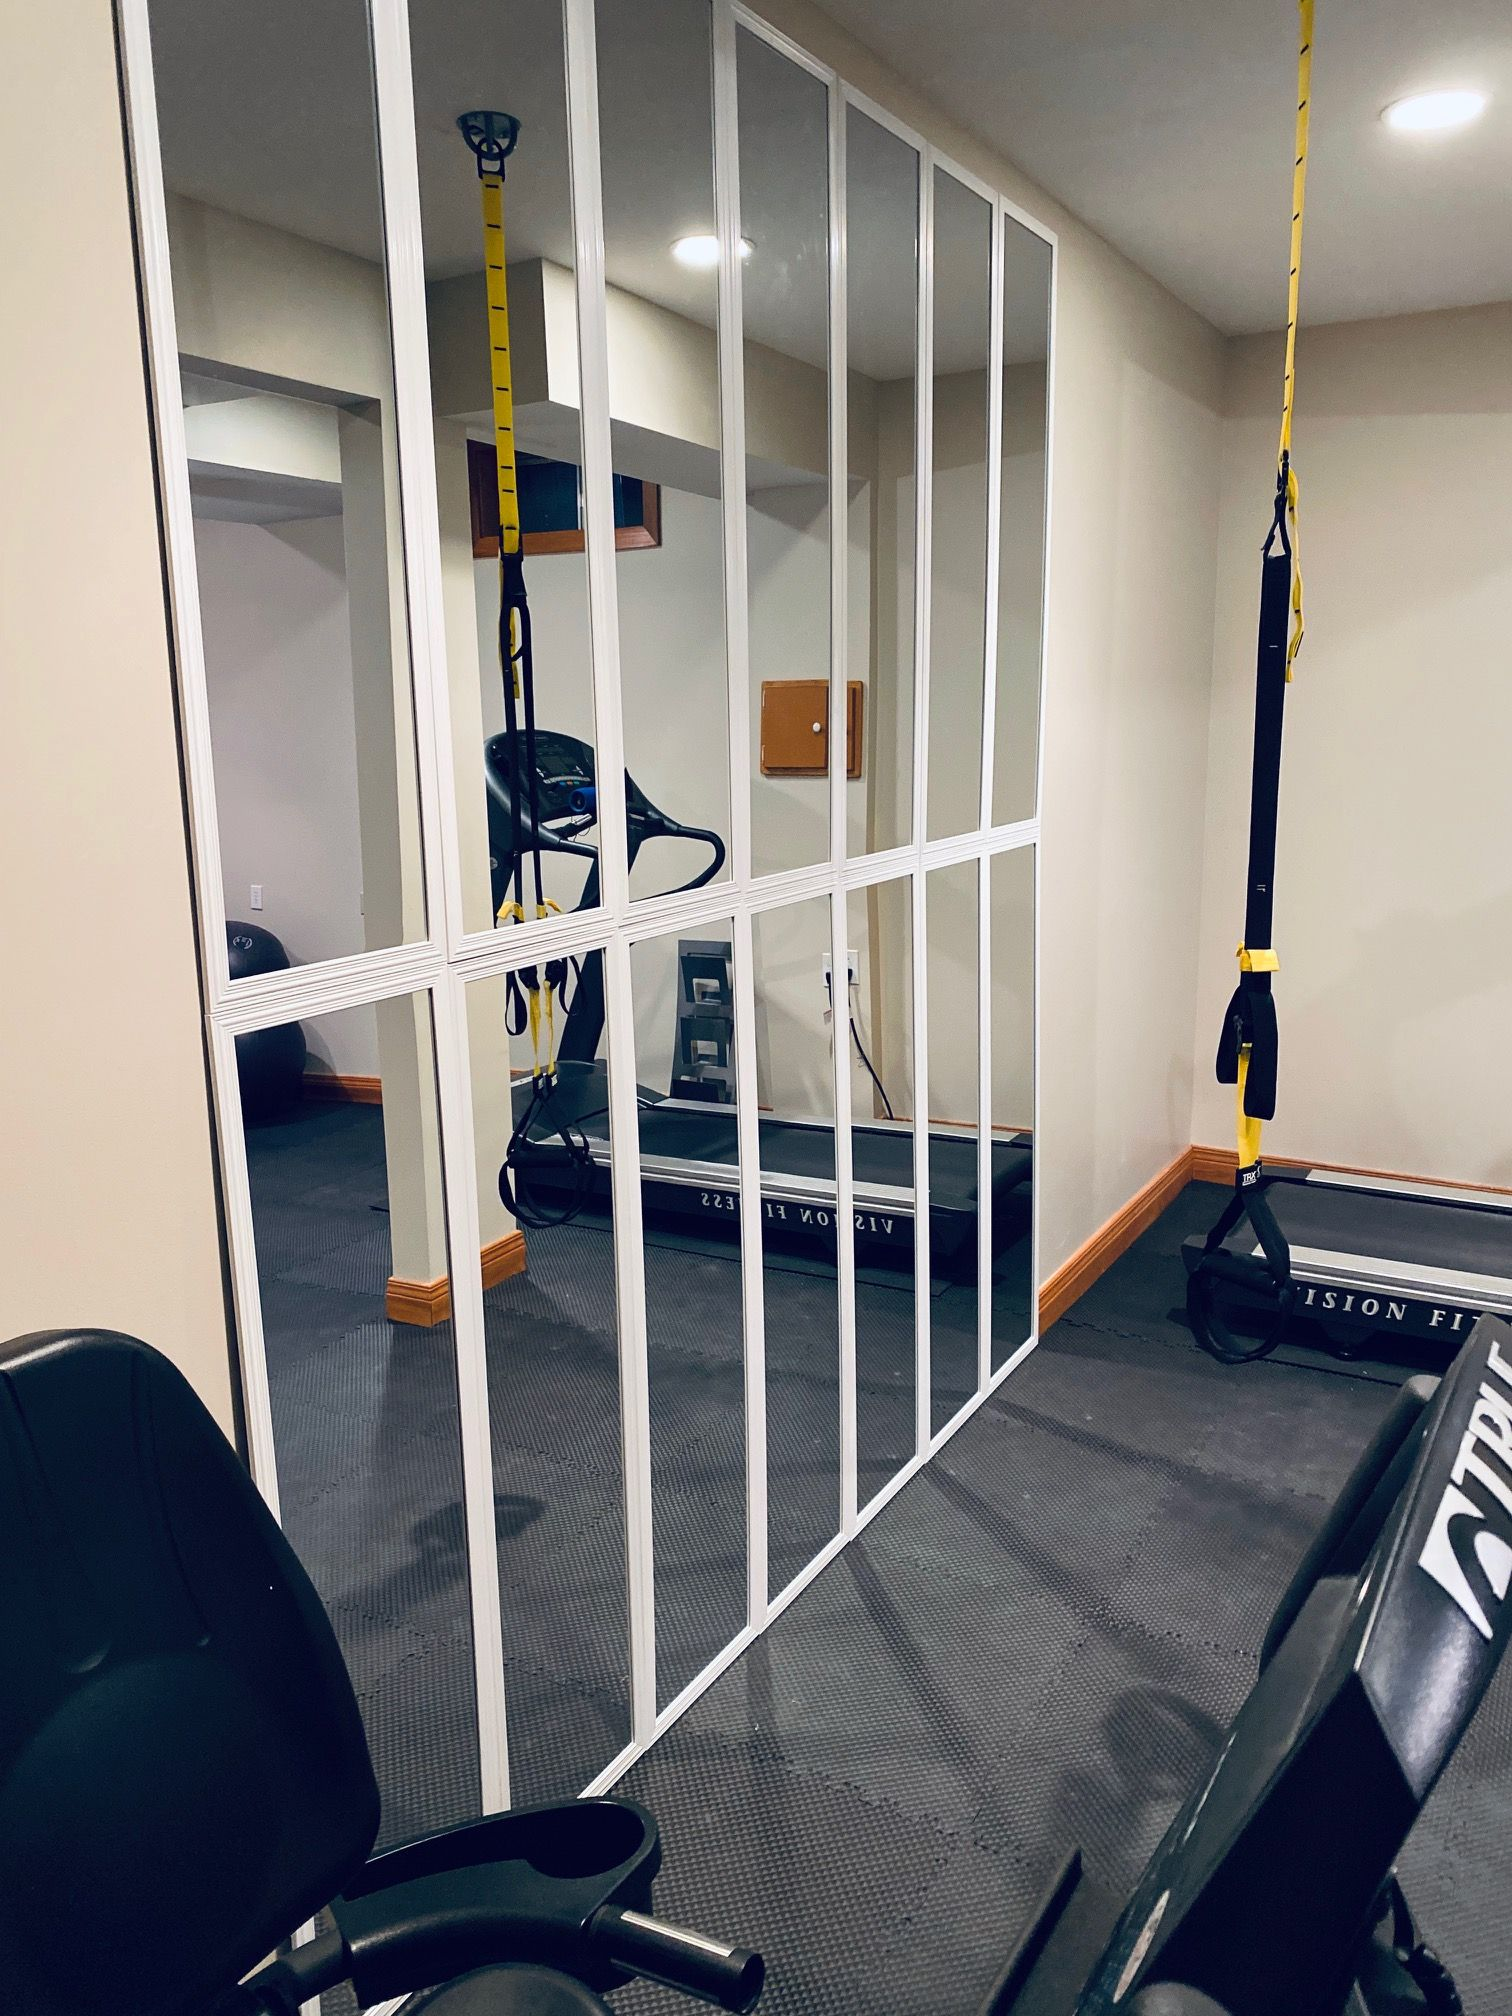 Installing A Diy Mirror Wall In Your Home Gym A How To In 2020 Diy Home Gym Home Gym Decor Home Gym Mirrors